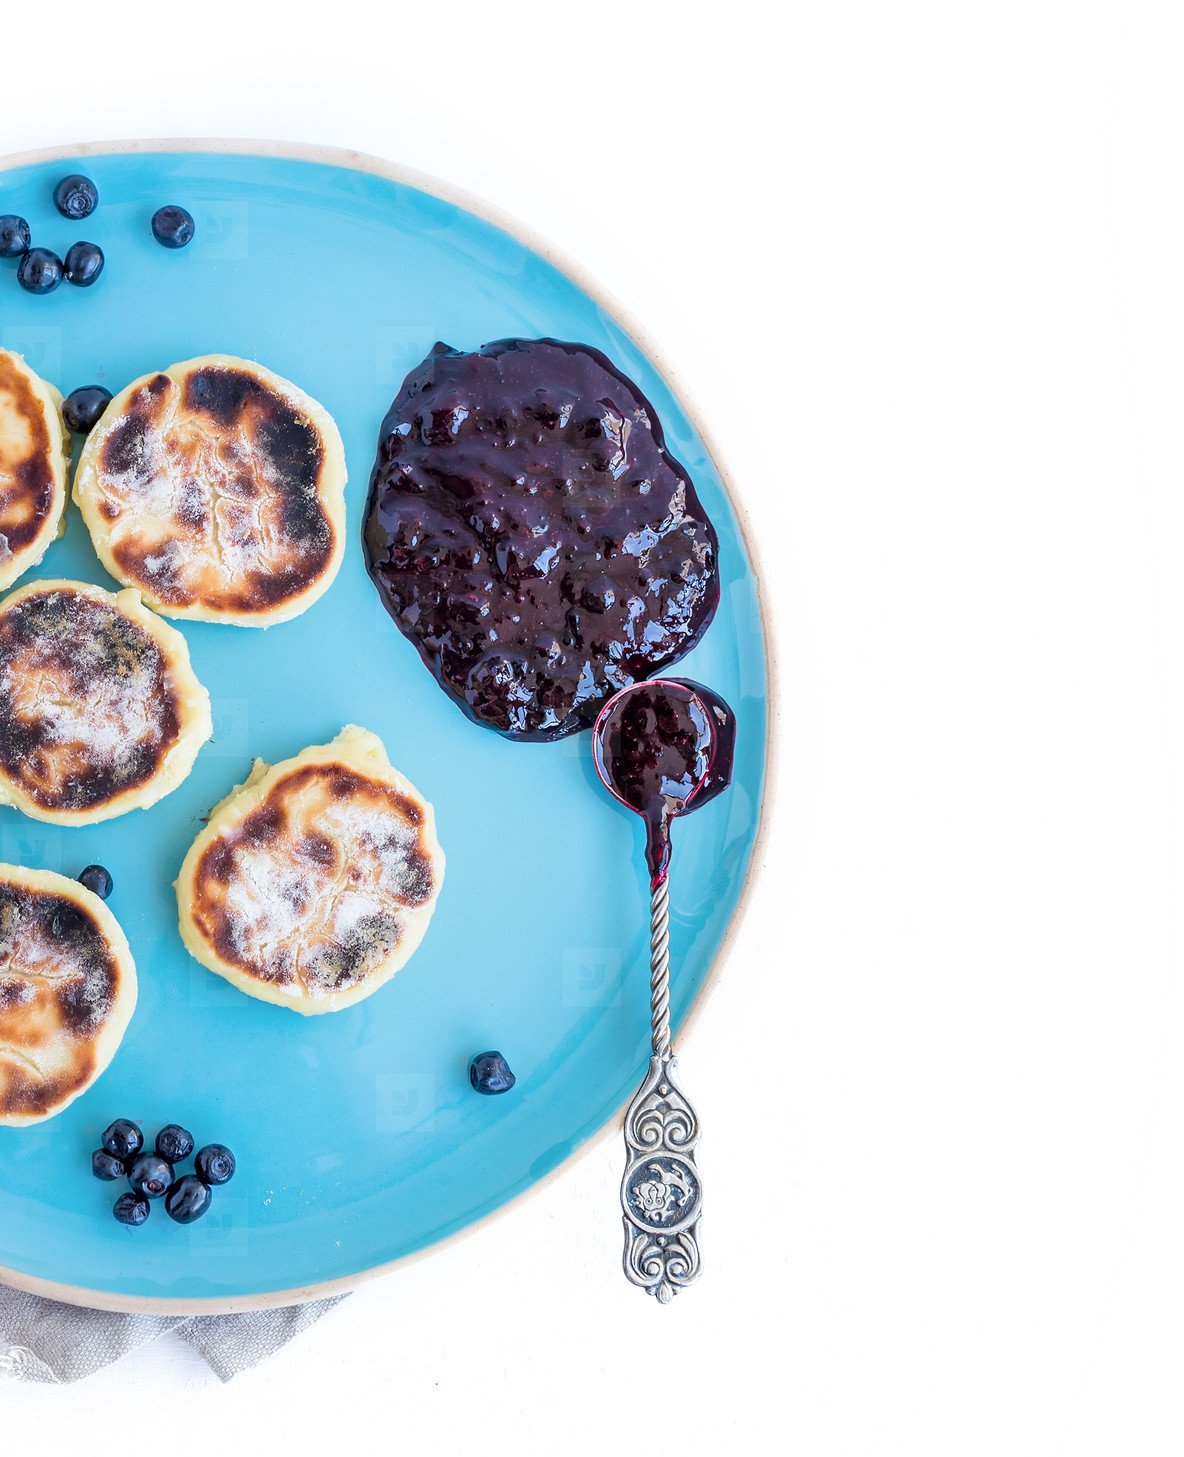 Cottage cheese pancakes with fresh blackberries and blac curra